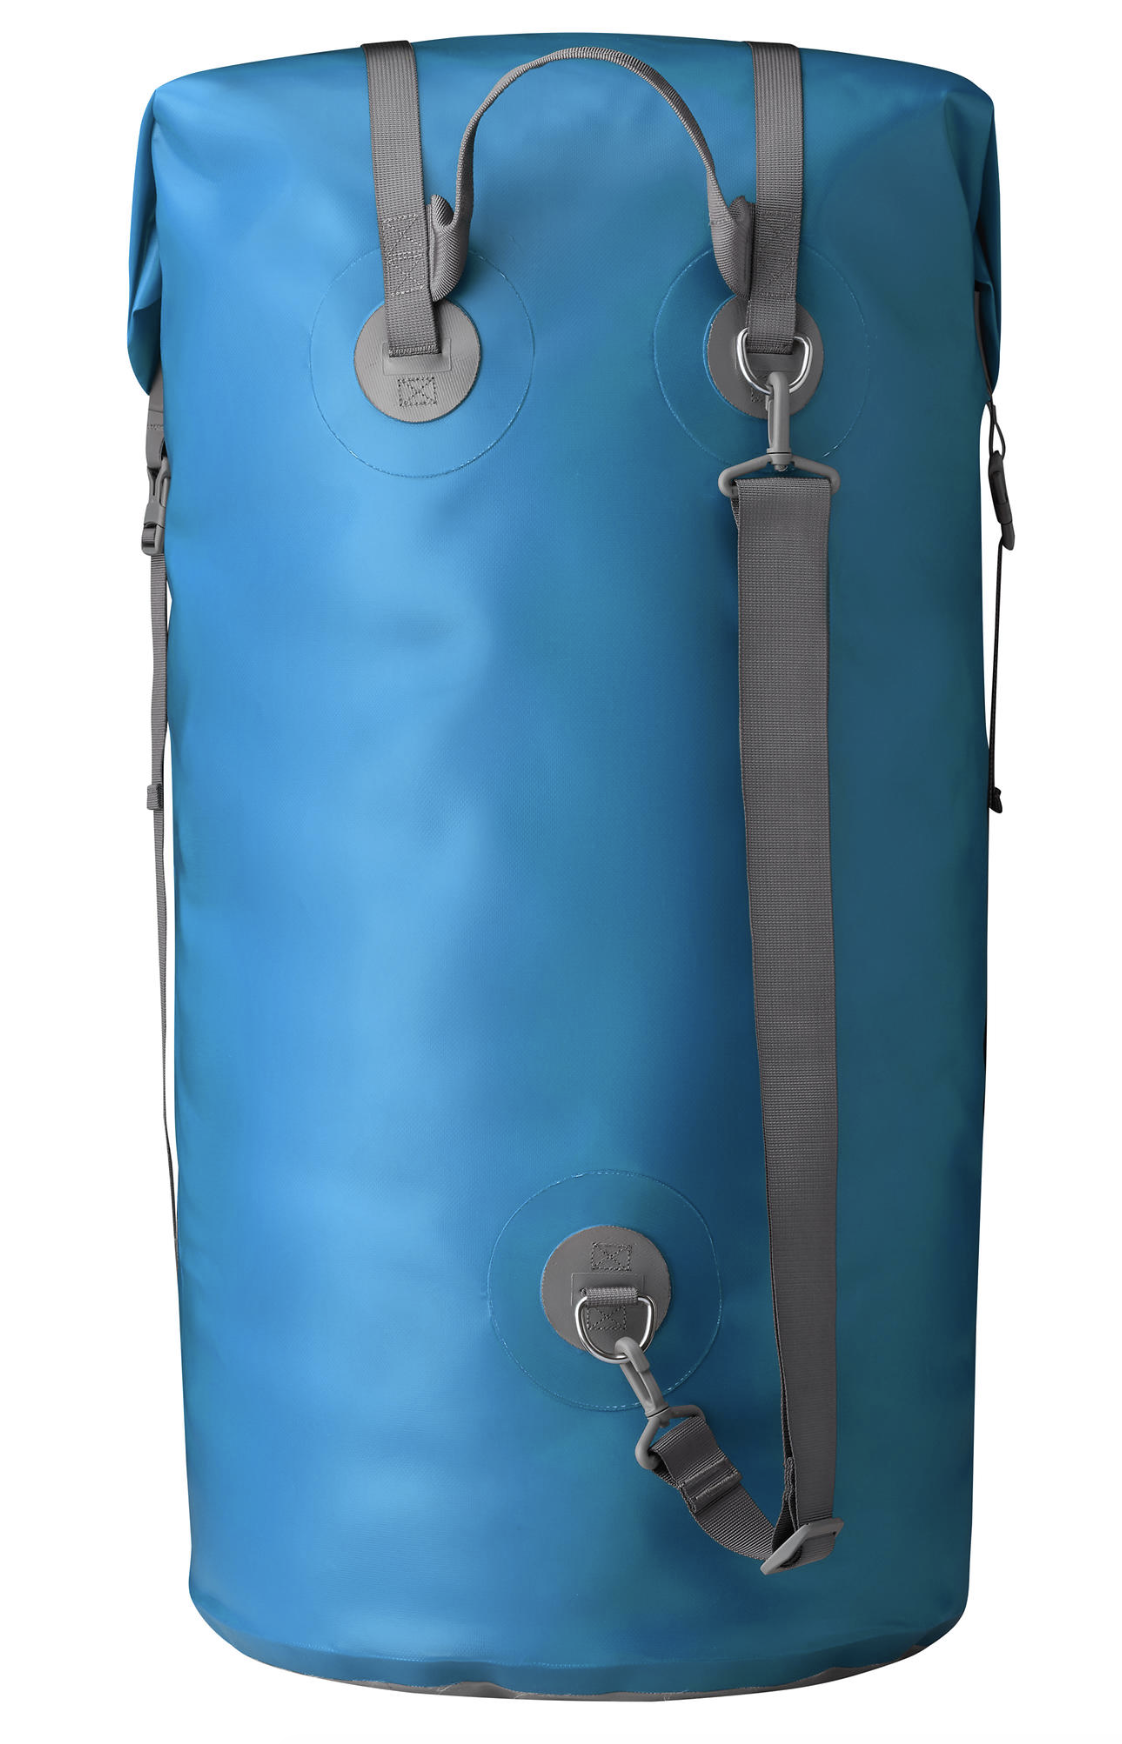 Bags, Boxes, Cases & Packs: Outfitter Dry Bag by NRS - Image 4823